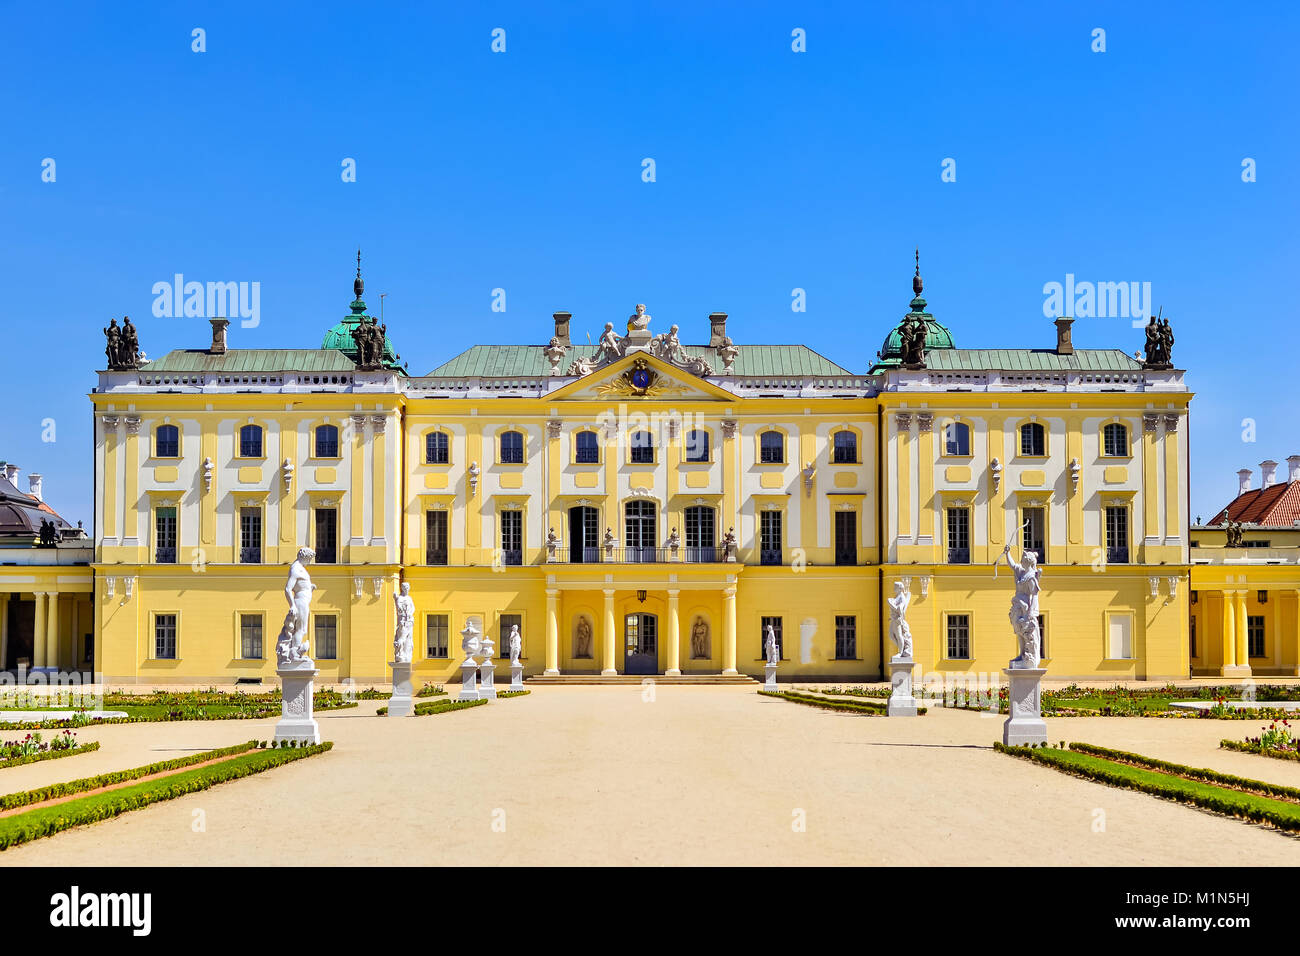 Branicki Palace and Medical University of Bialystok Clinical Hospitals in Poland. Architecture of baroque mansions Stock Photo